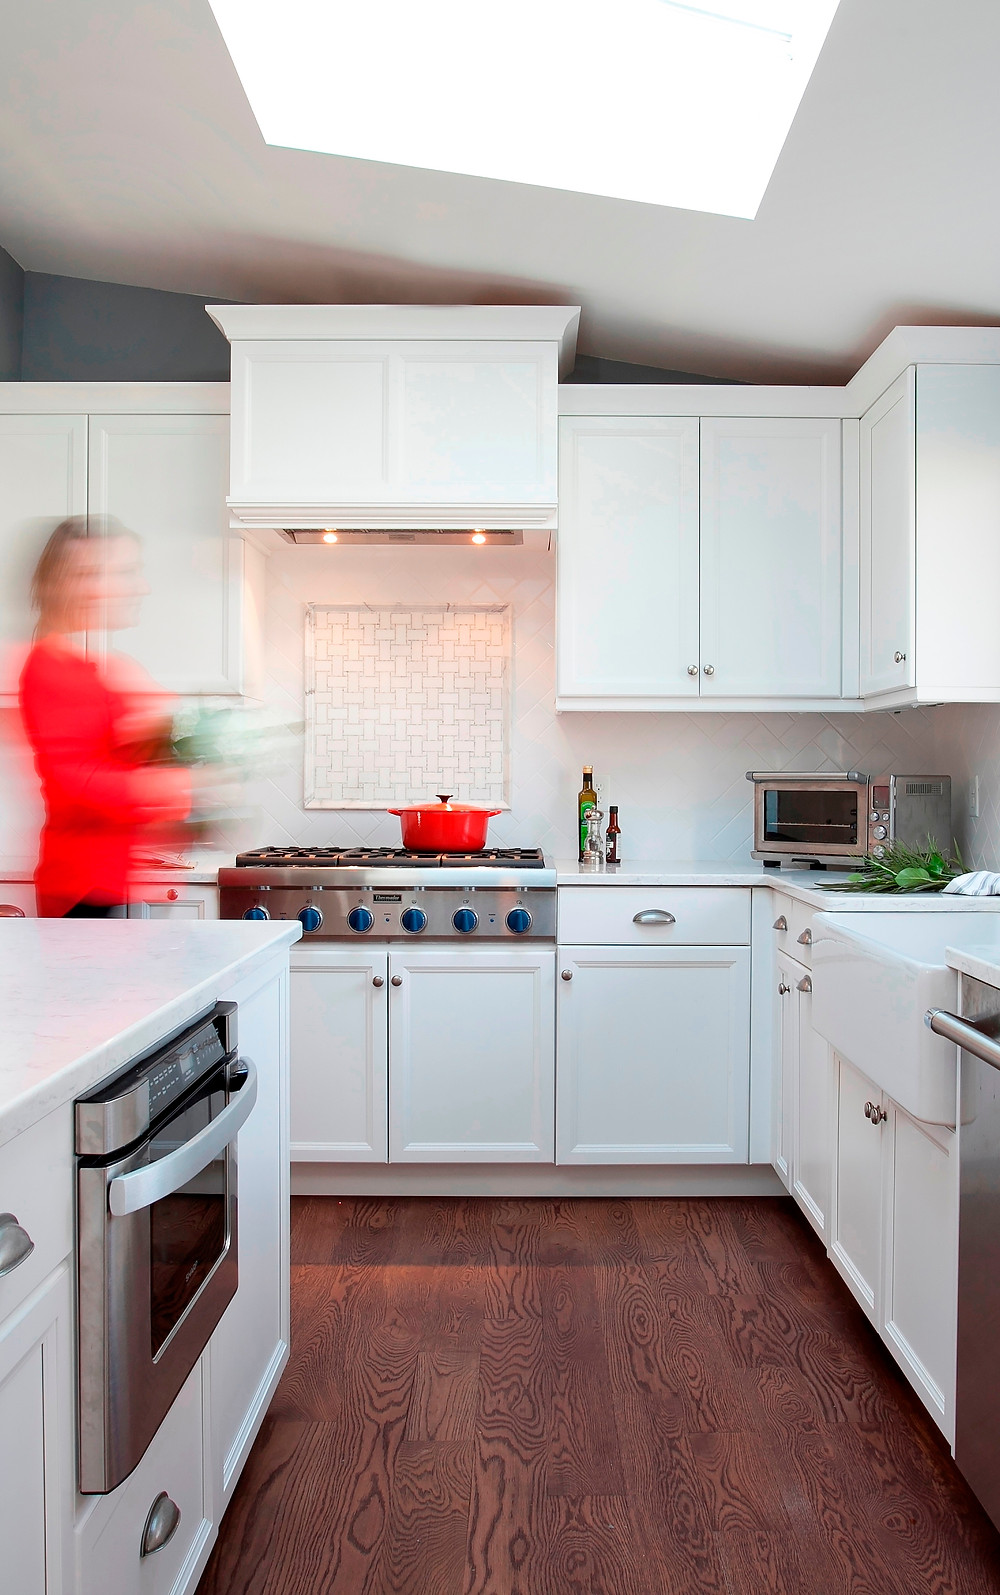 The white kitchen will retain its popularity but may now be joined by pops of jewel-toned color.